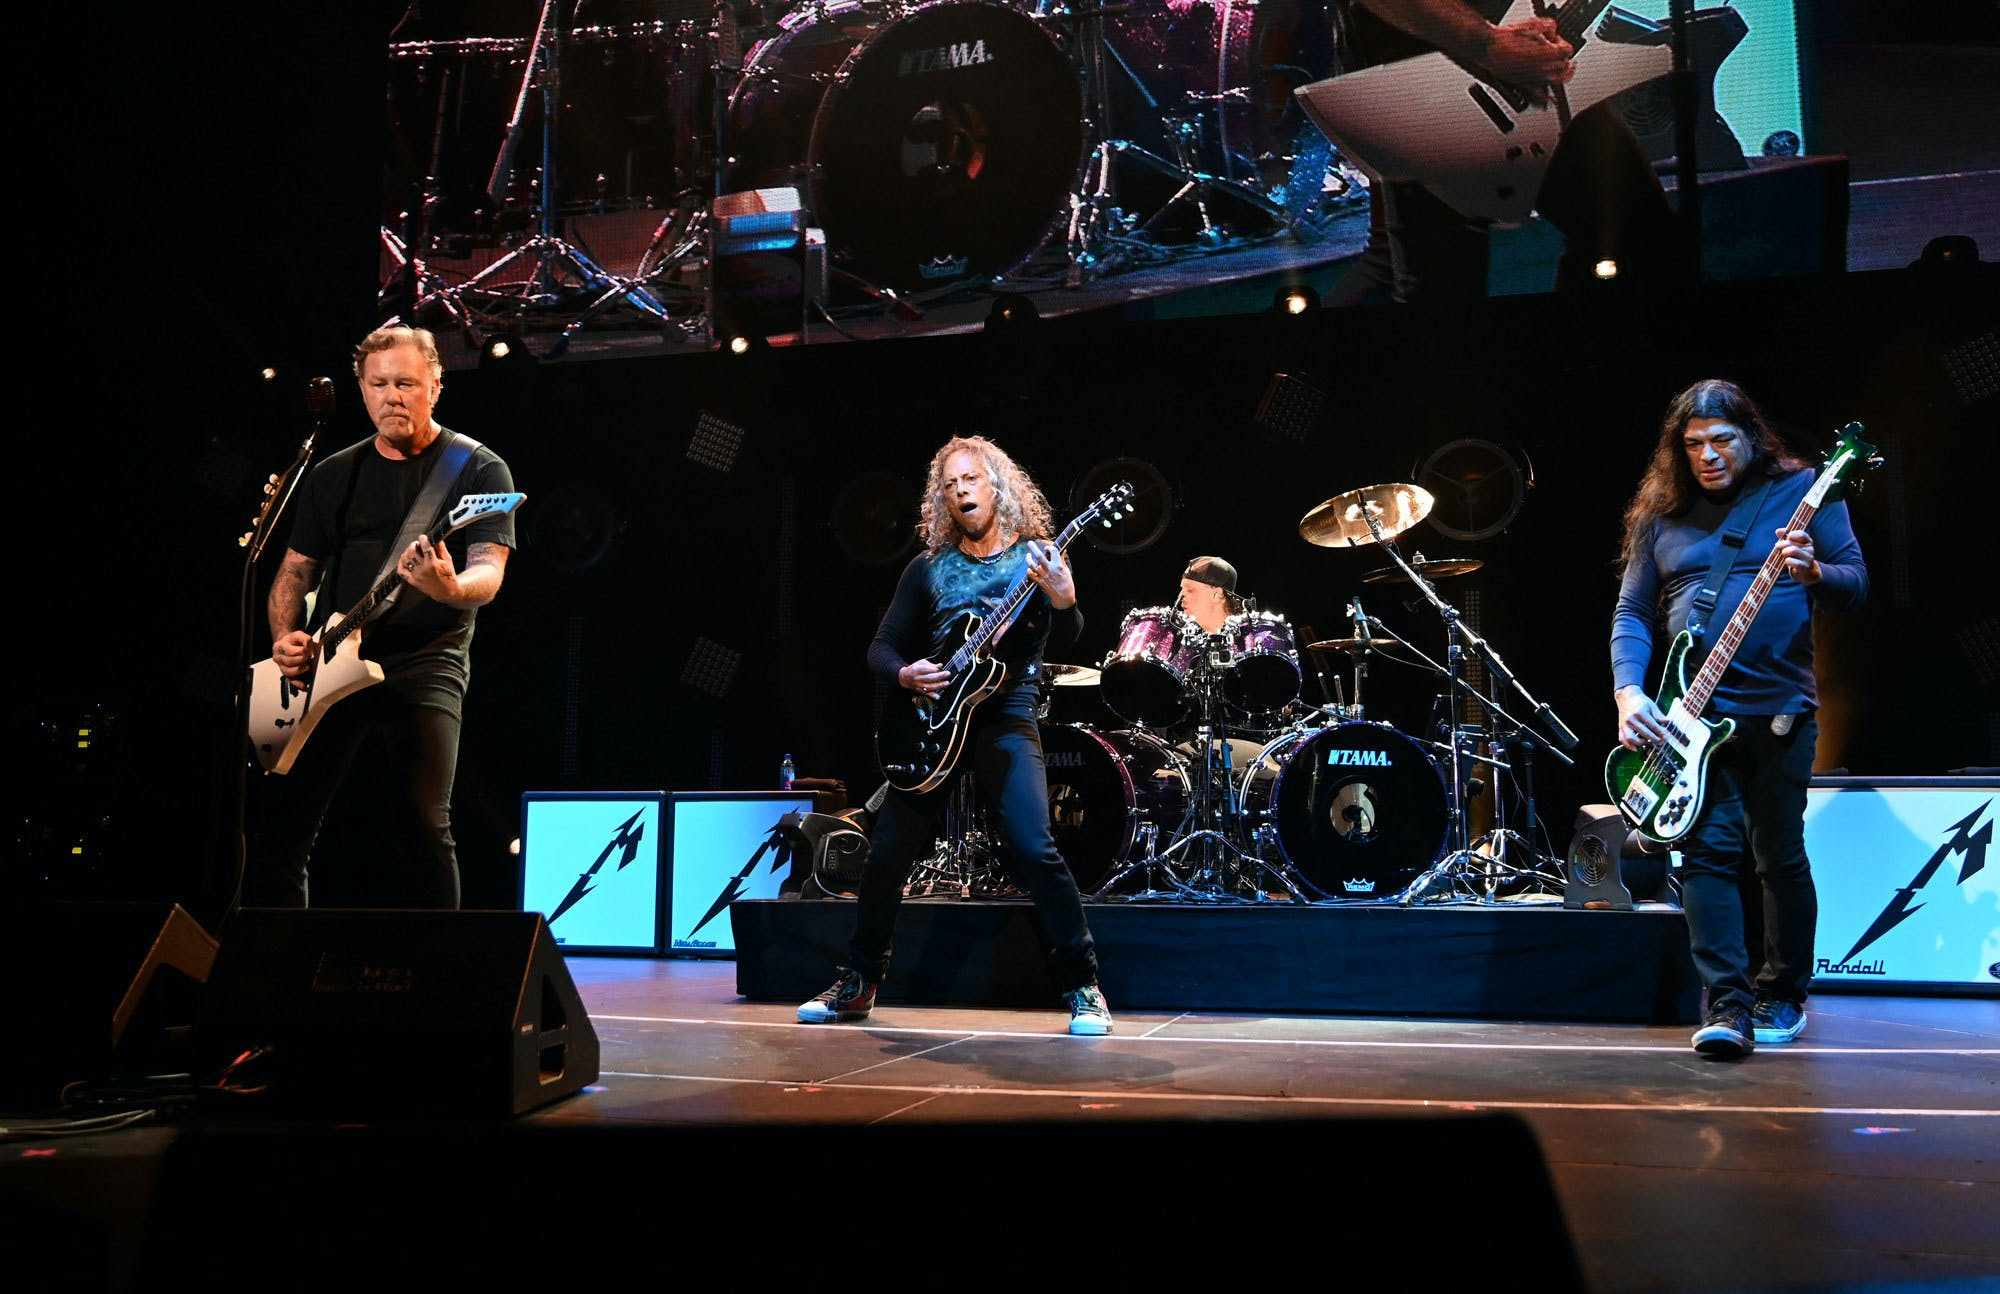 Watch Metallica's Full Set From The Chris Cornell Tribute Concert